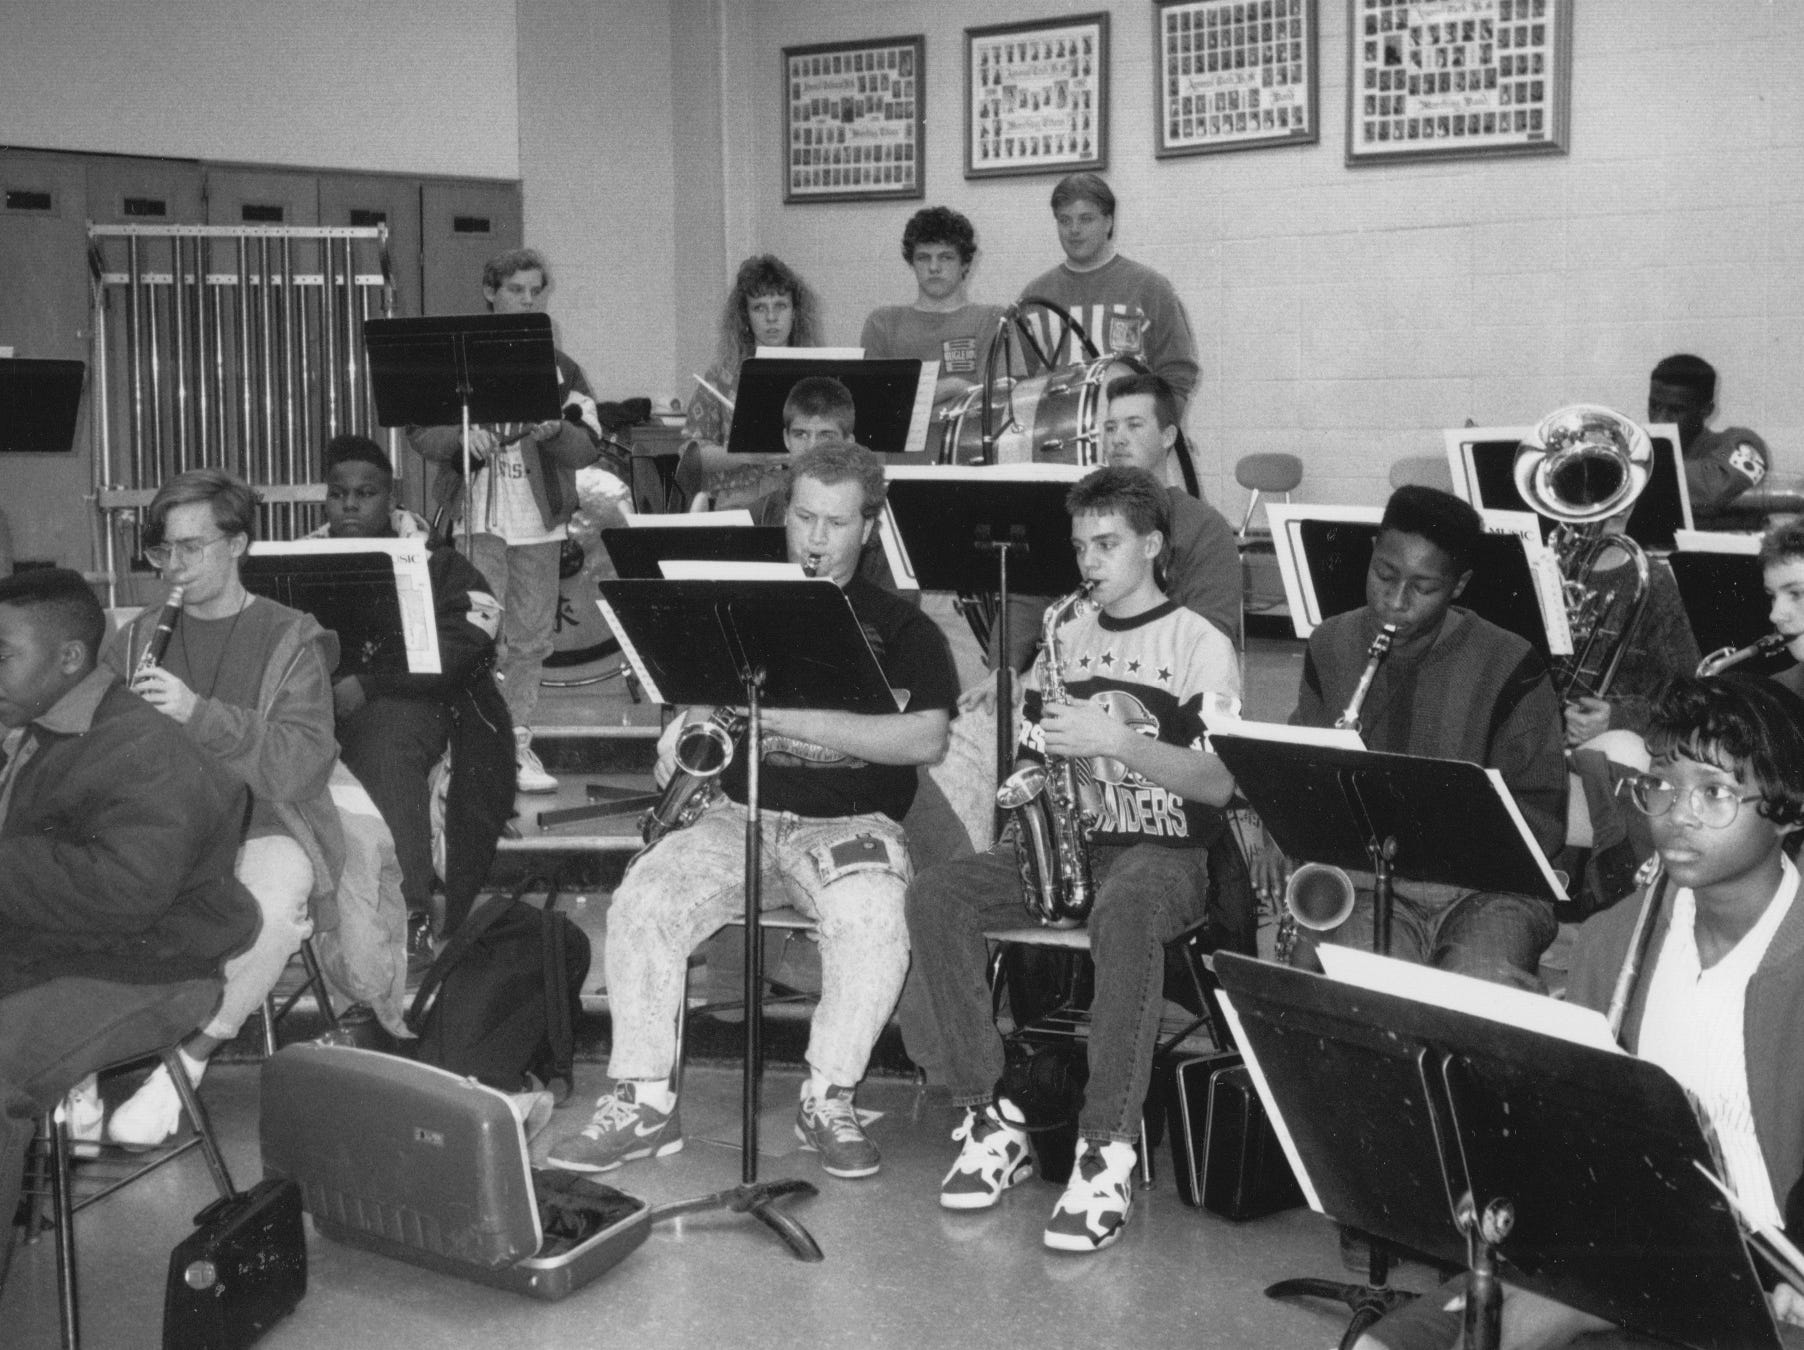 Tech High School's Marching Titans practice in 1991. The band was practicing for their appearance in the Beach Bowl parade.